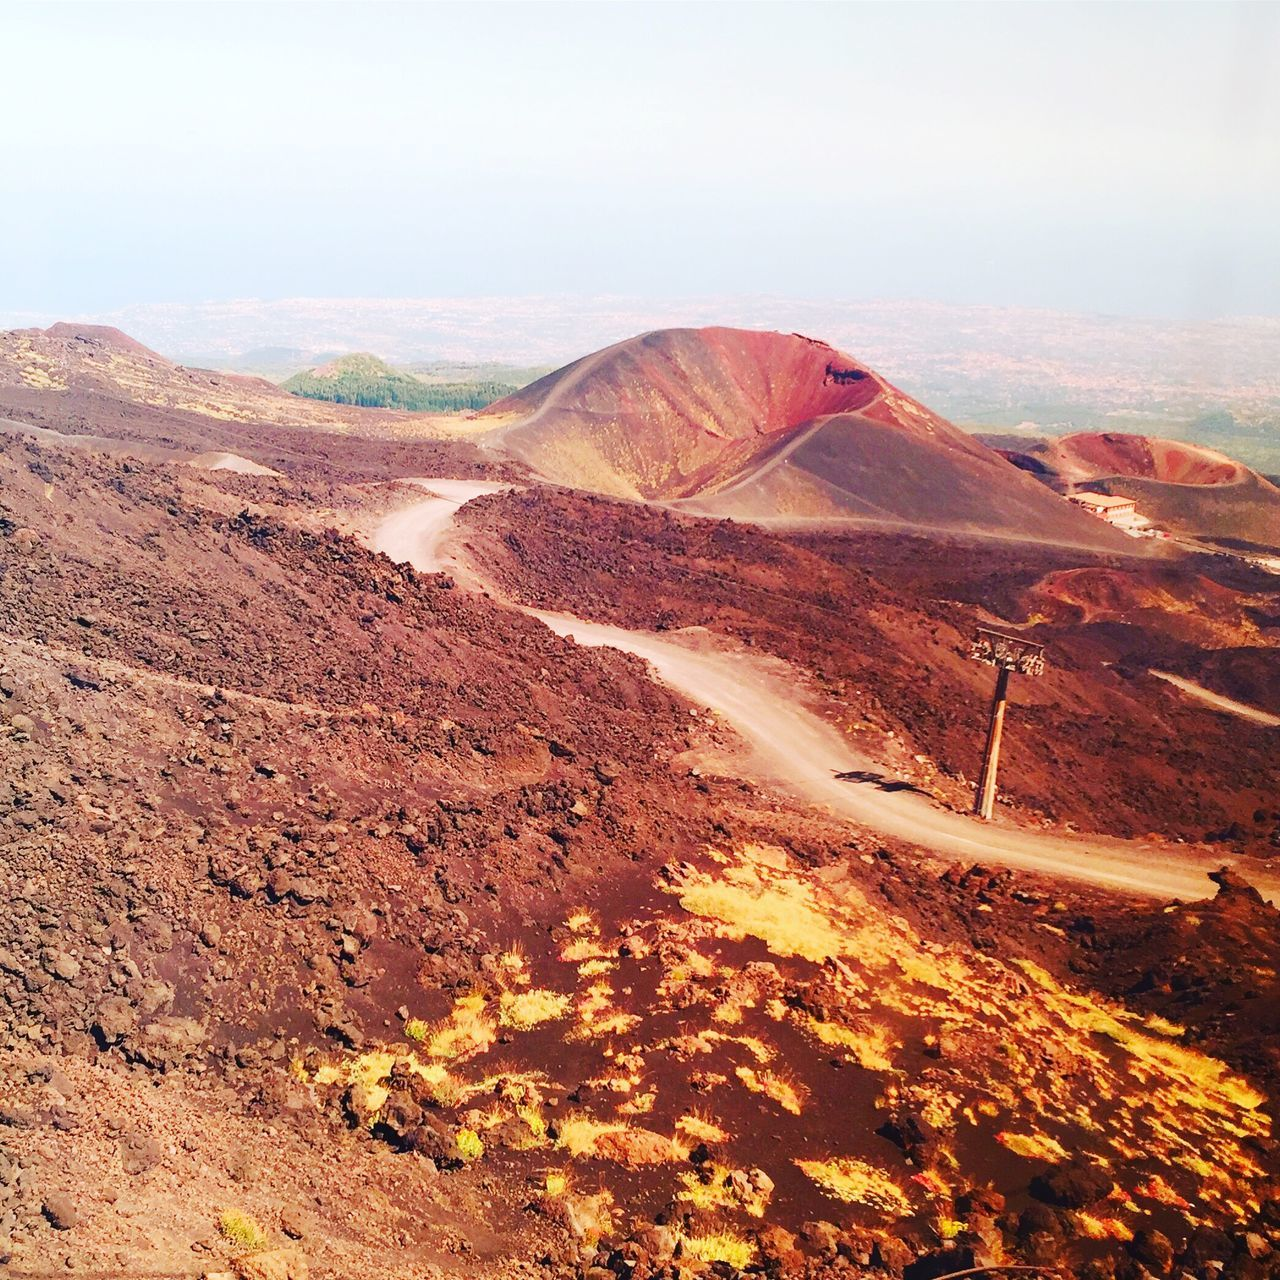 EyeEm Selects Etna volcano Nature Tranquility Tranquil Scene Landscape Geology Scenics Beauty In Nature Outdoors Physical Geography No People Arid Climate Day Travel Destinations Desert Mountain Sky Clear Sky Etna Volcano